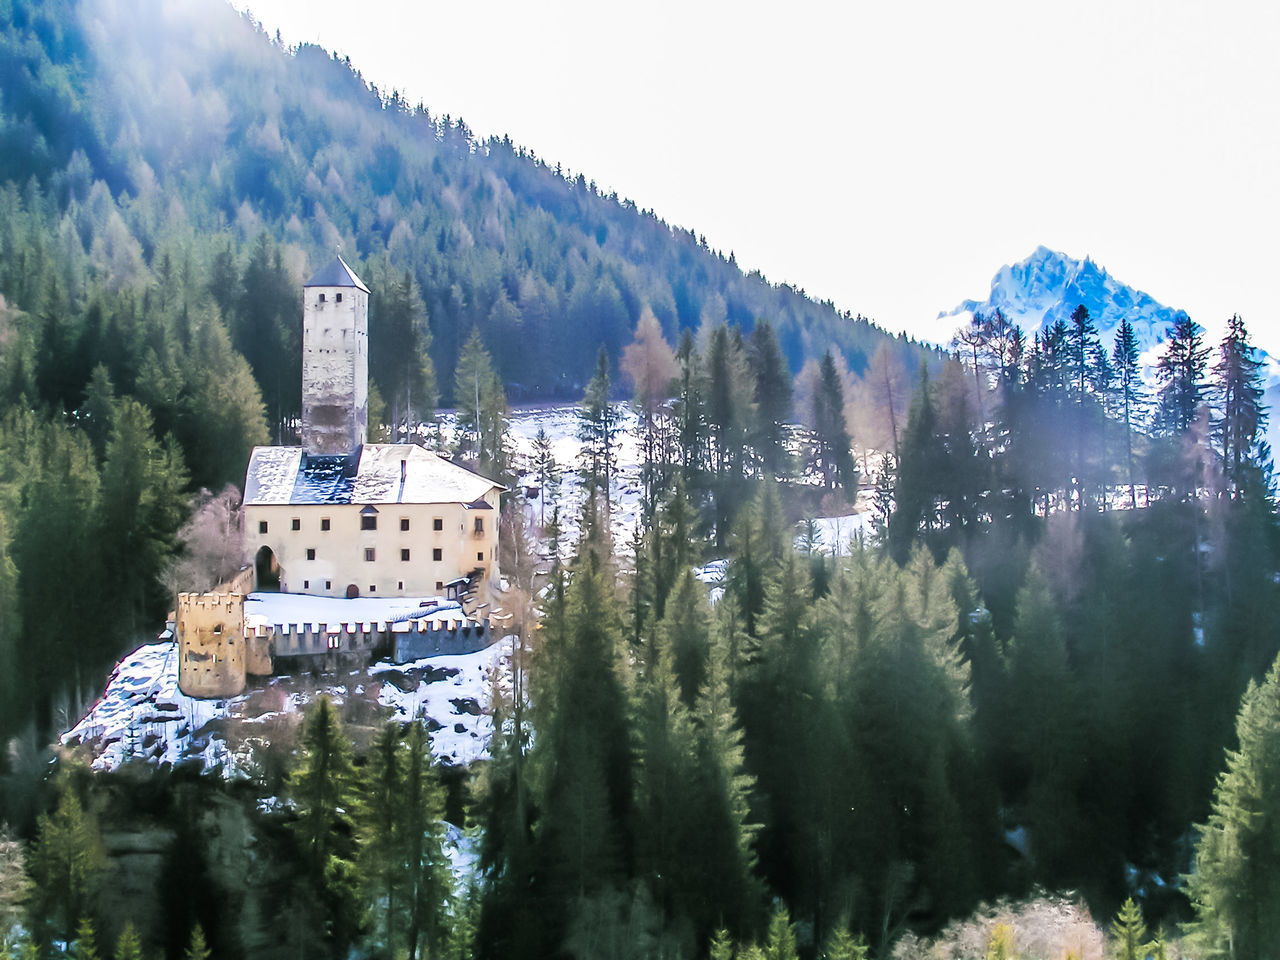 tree, mountain, plant, architecture, sky, nature, built structure, beauty in nature, building exterior, day, building, scenics - nature, land, winter, mountain range, growth, no people, cold temperature, travel, outdoors